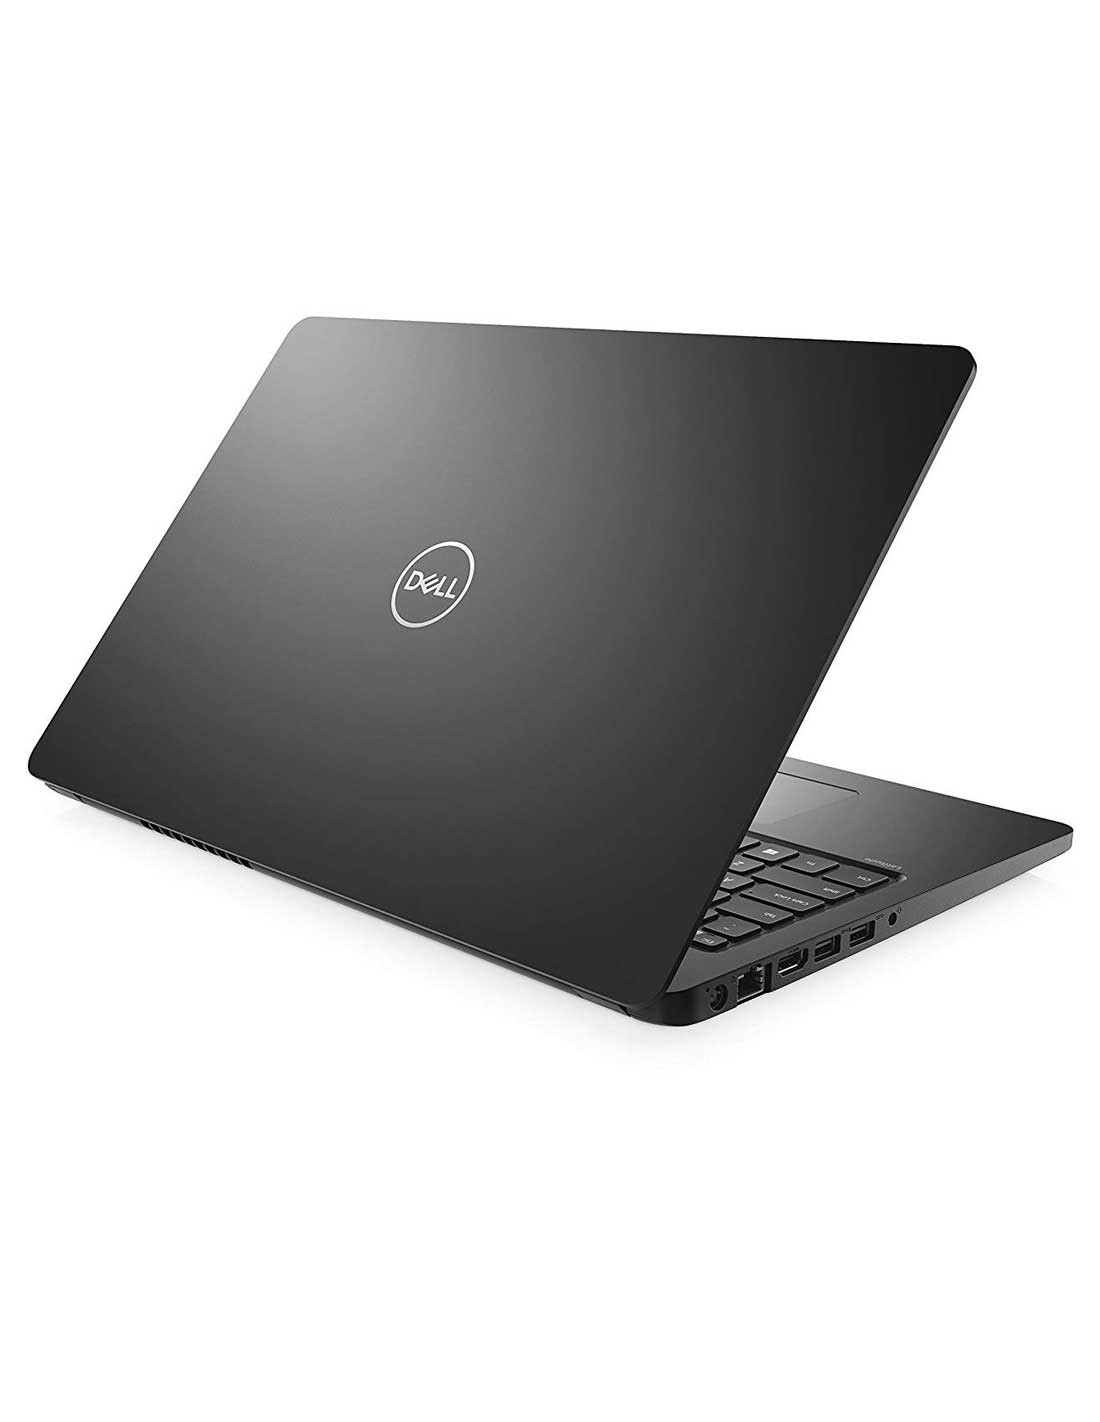 Dell Latitude 3580 i7 images and photos